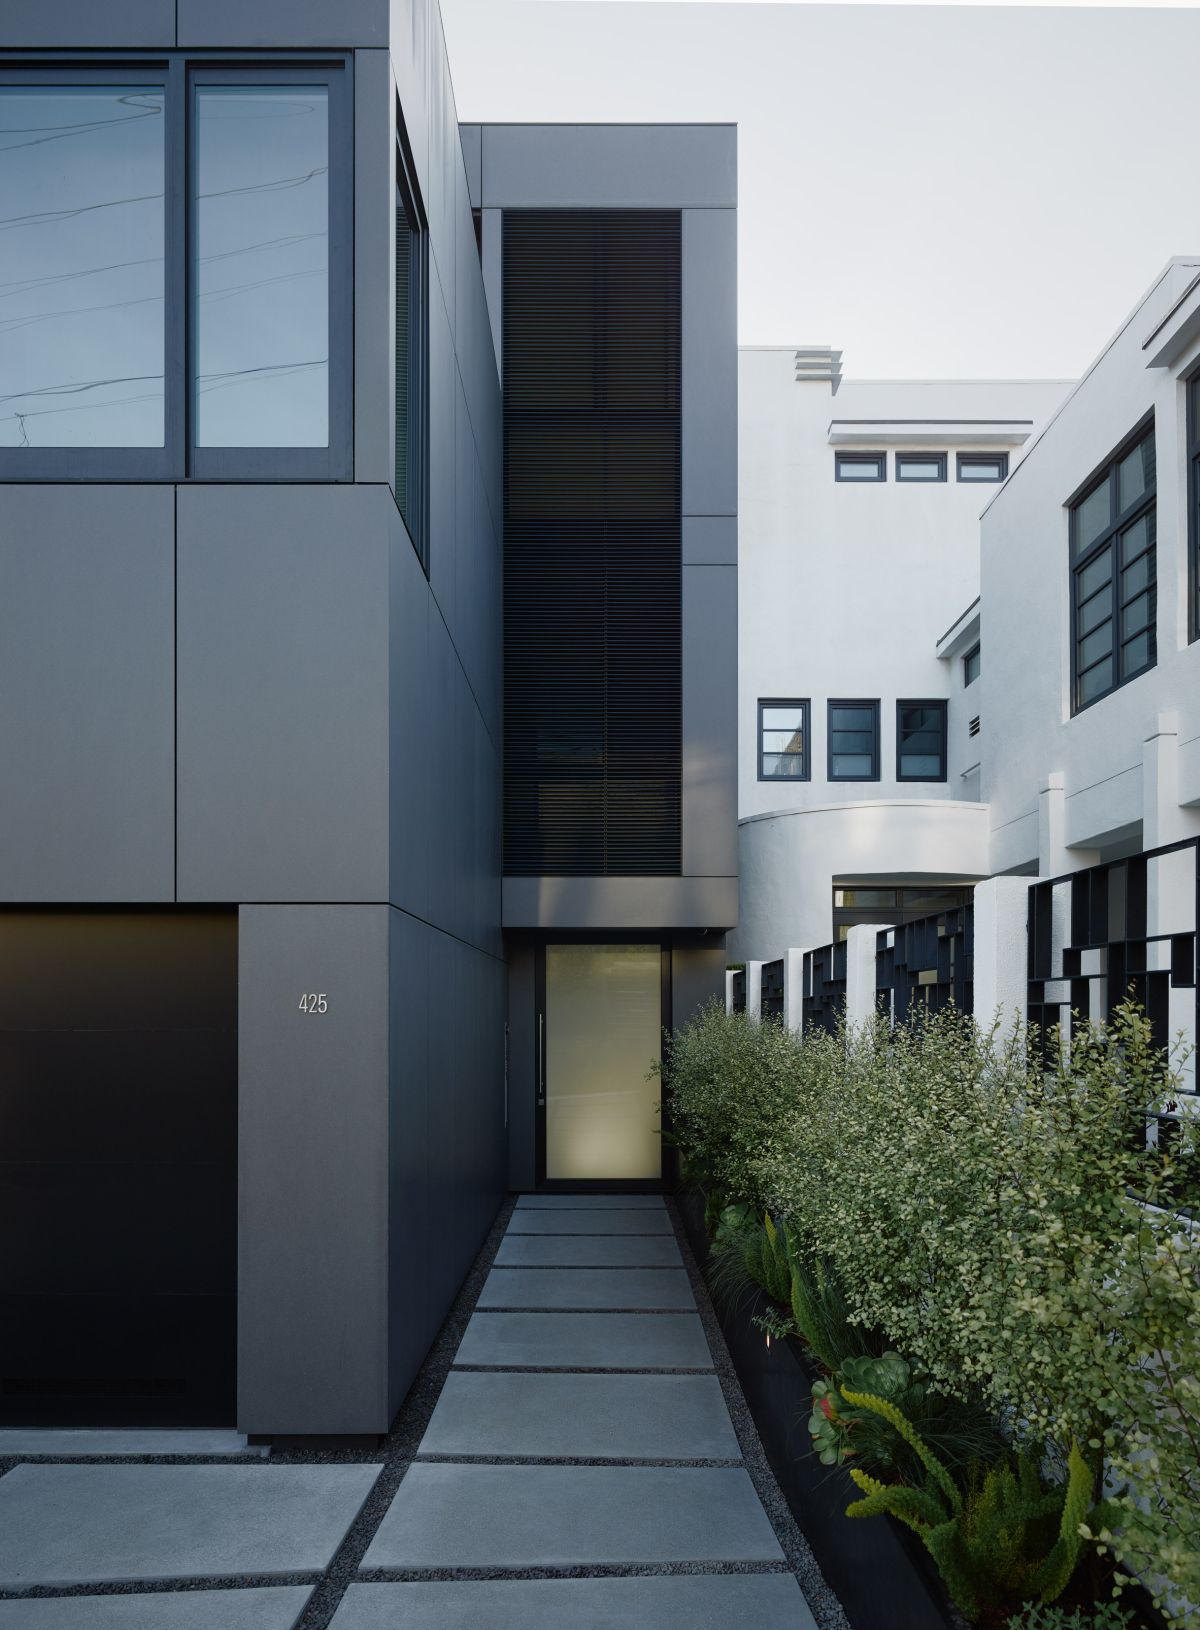 The house sits on a sloping site with very little room between it and the neighboring properties. This proximity inspired the architects to design a dark facade